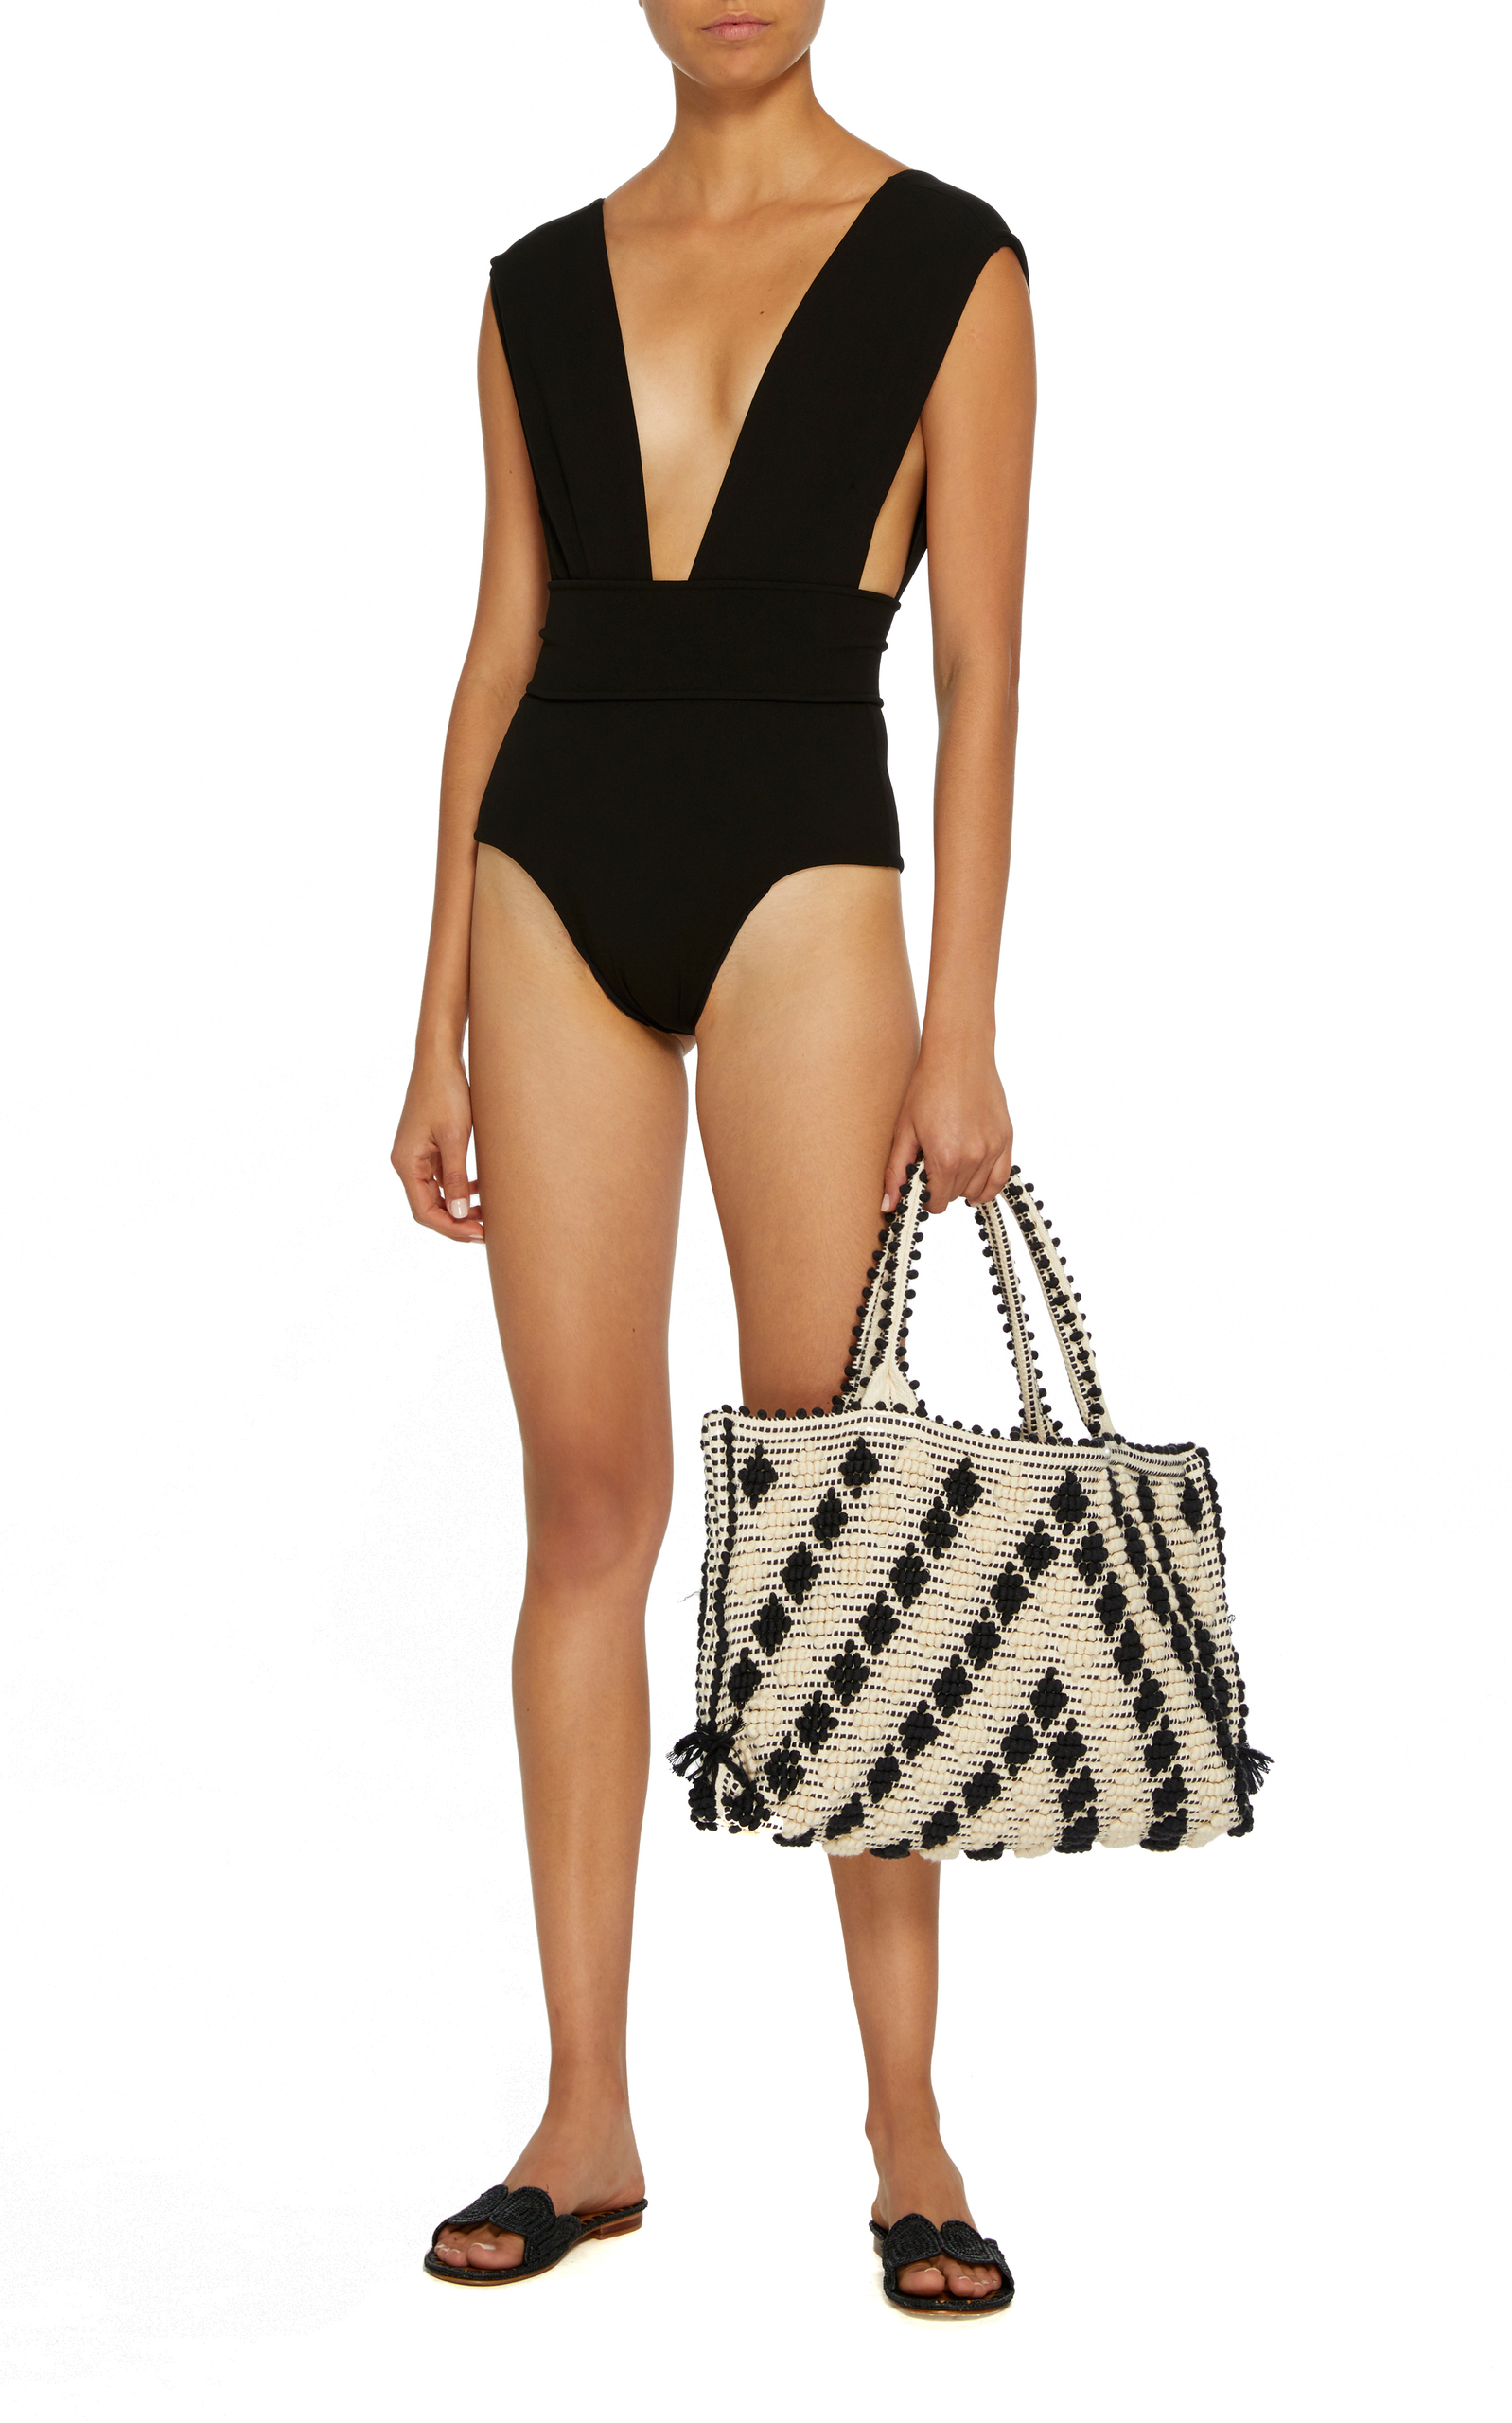 616f7362667 V Crepe One Piece Swimsuit